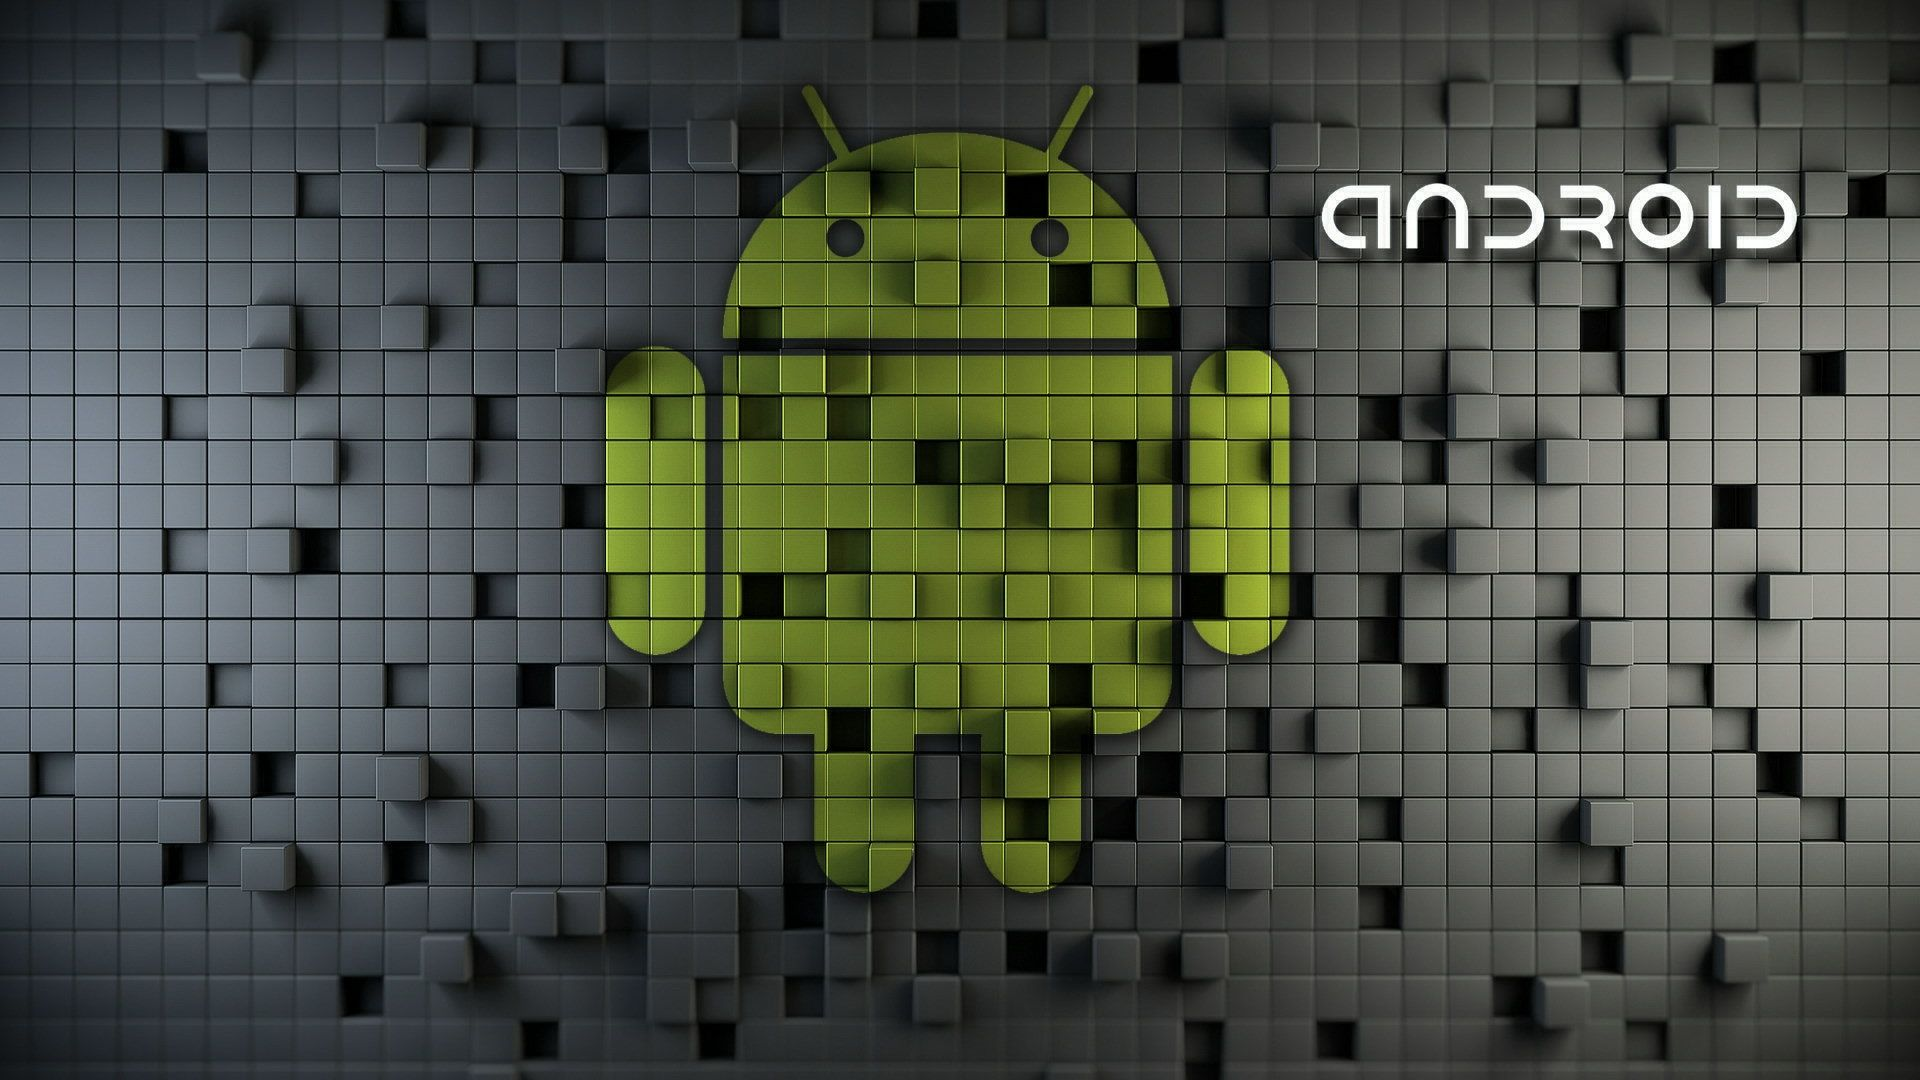 Hd android robot design desktop wallpapers | Android ...